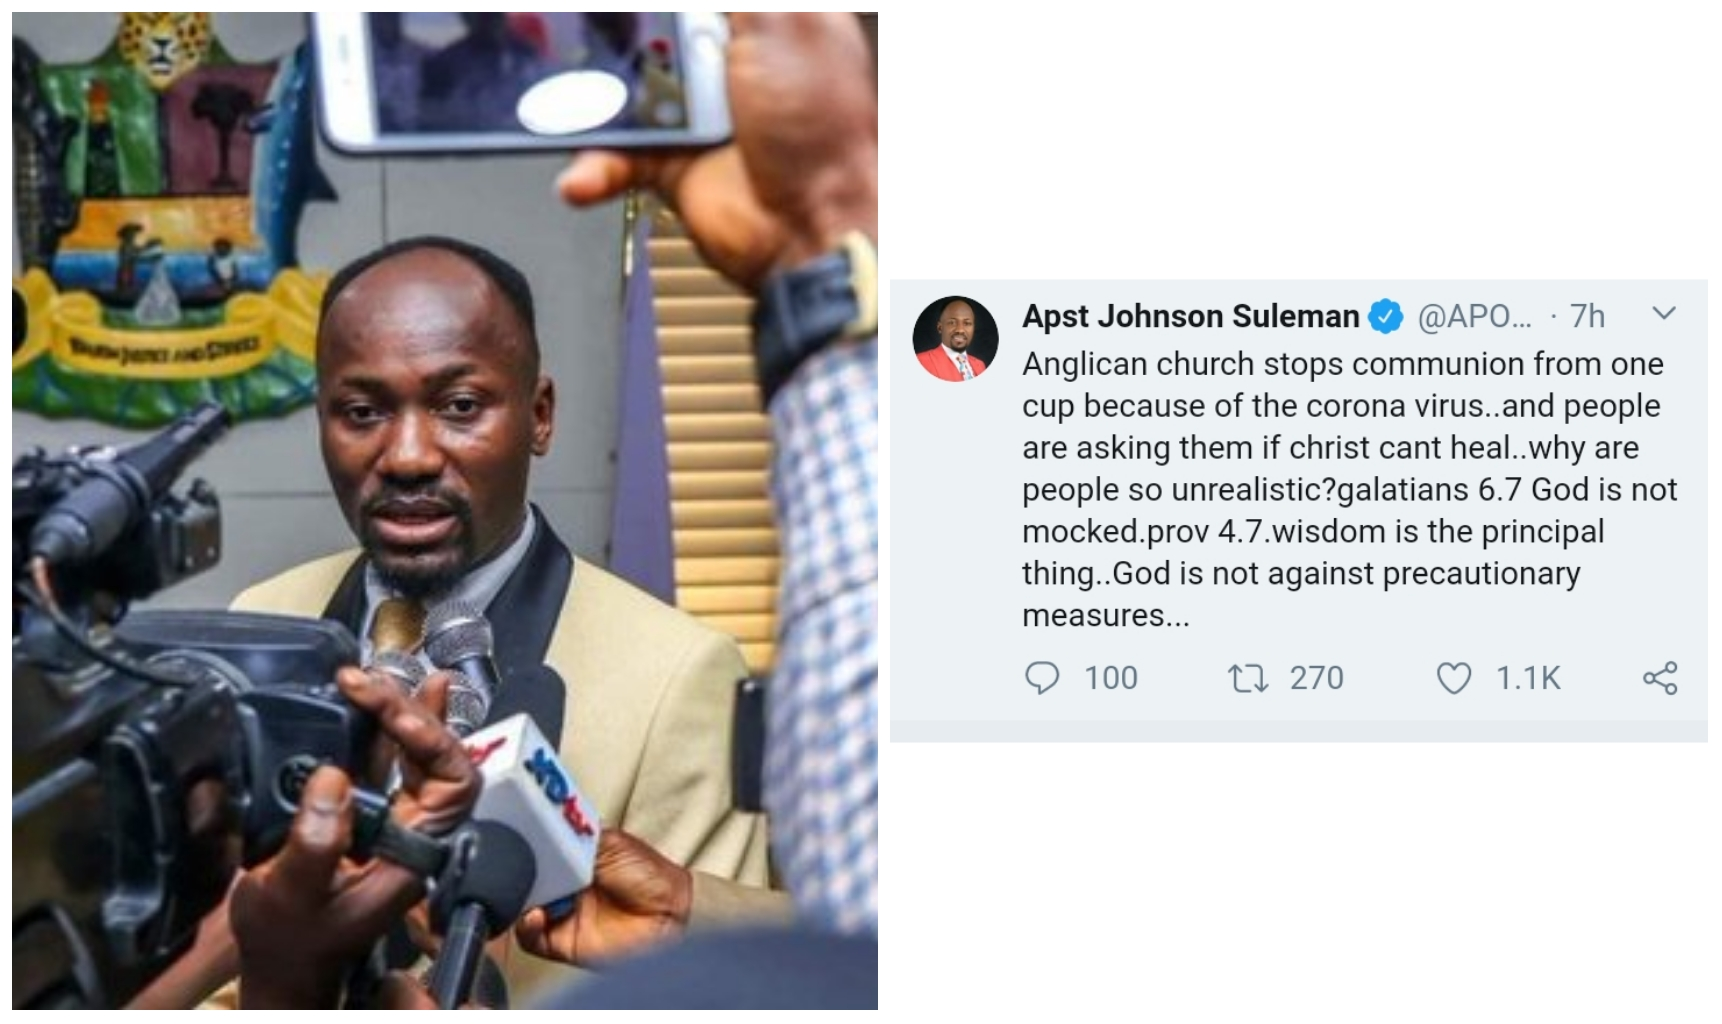 Apostle Suleman responds to people asking if Jesus Christ can't heal coronavirus